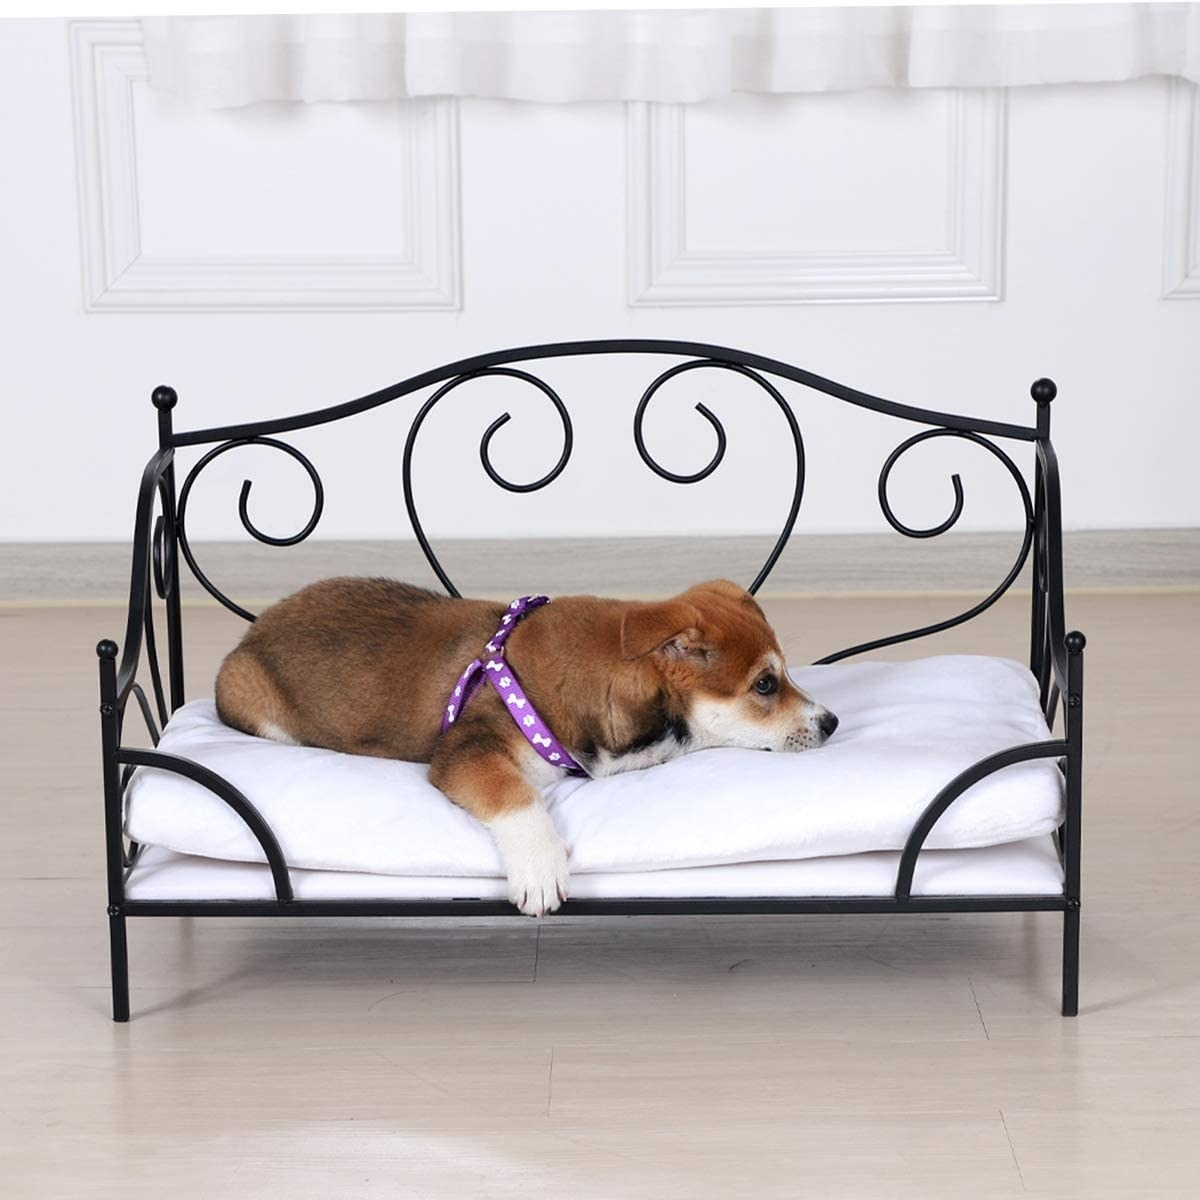 A product shot of the curved metal bed frame that looks like a human daybed in miniature. There is a puppy laying across the padded pillow.